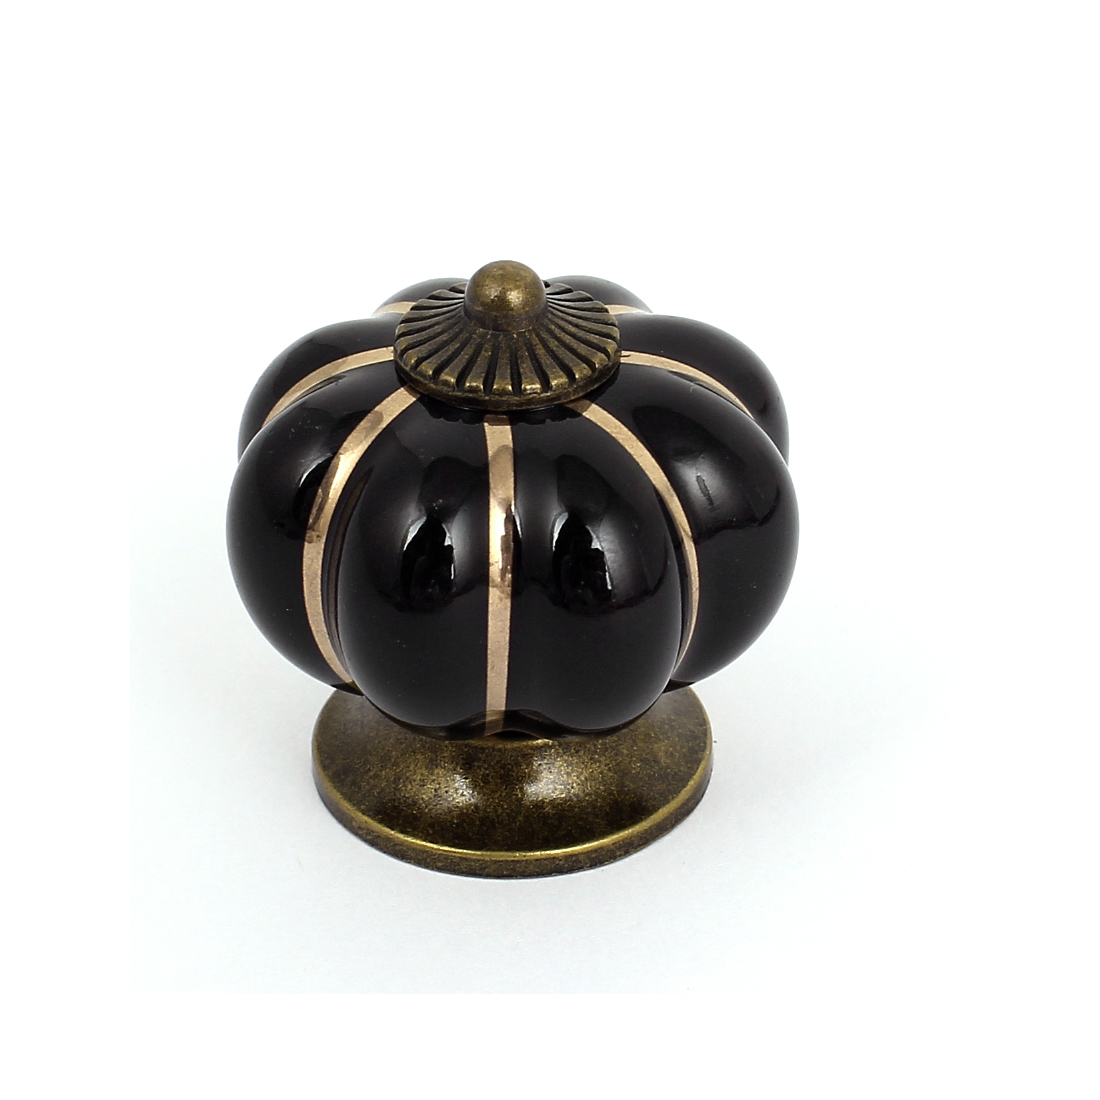 Cabinet Dresser Drawer Ceramic Pumpkin Knob Pull Handle Grip Black Bronze Tone